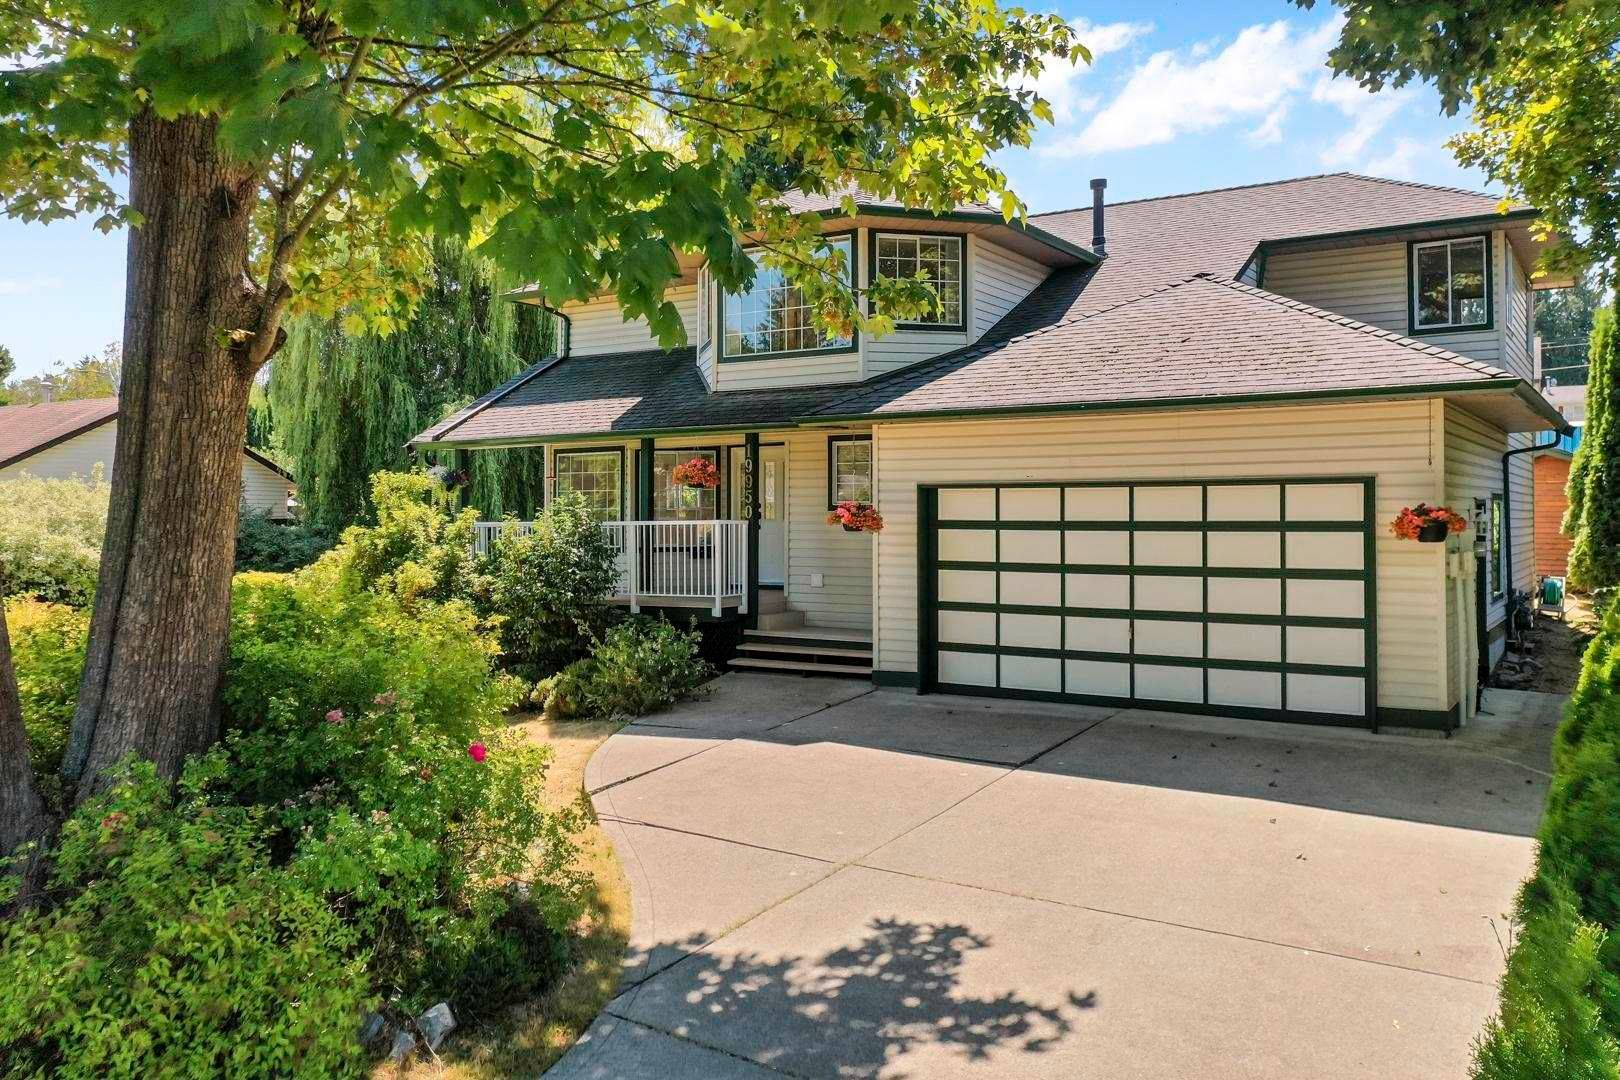 Main Photo: 19950 48A Avenue in Langley: Langley City House for sale : MLS®# R2606185